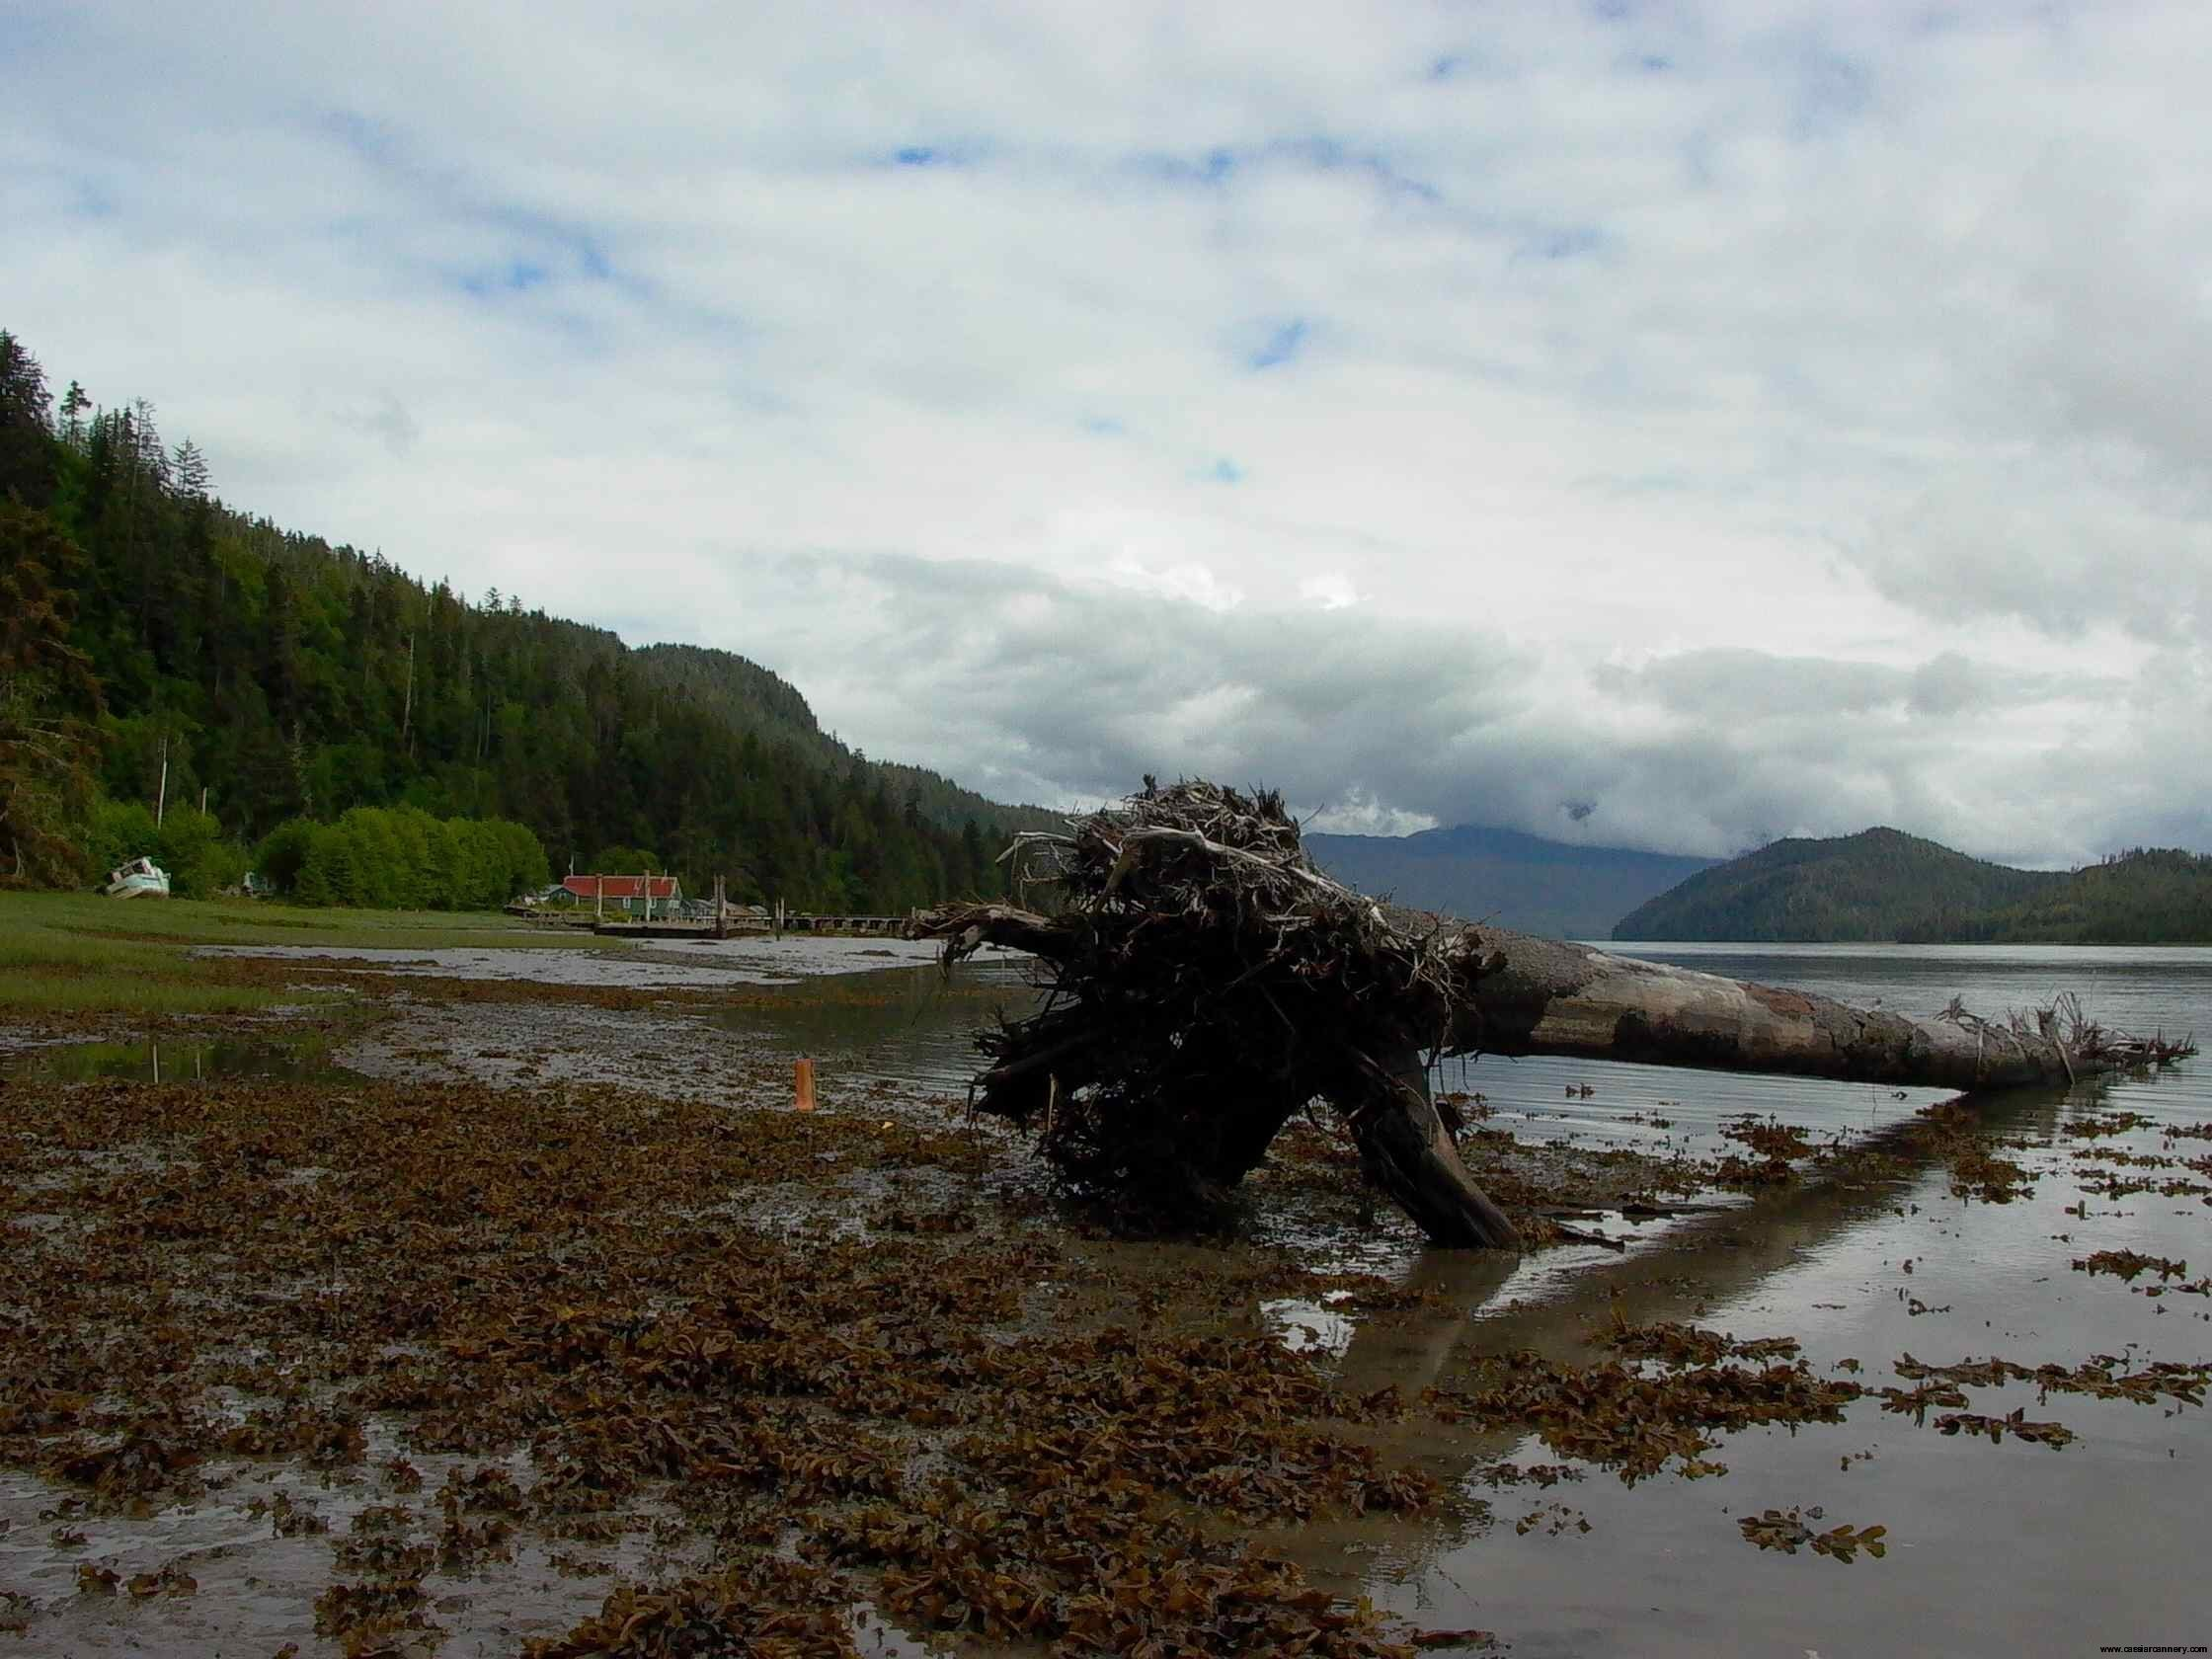 Cassiar Cannery: Sometimes we are lucky and the log comes right to us